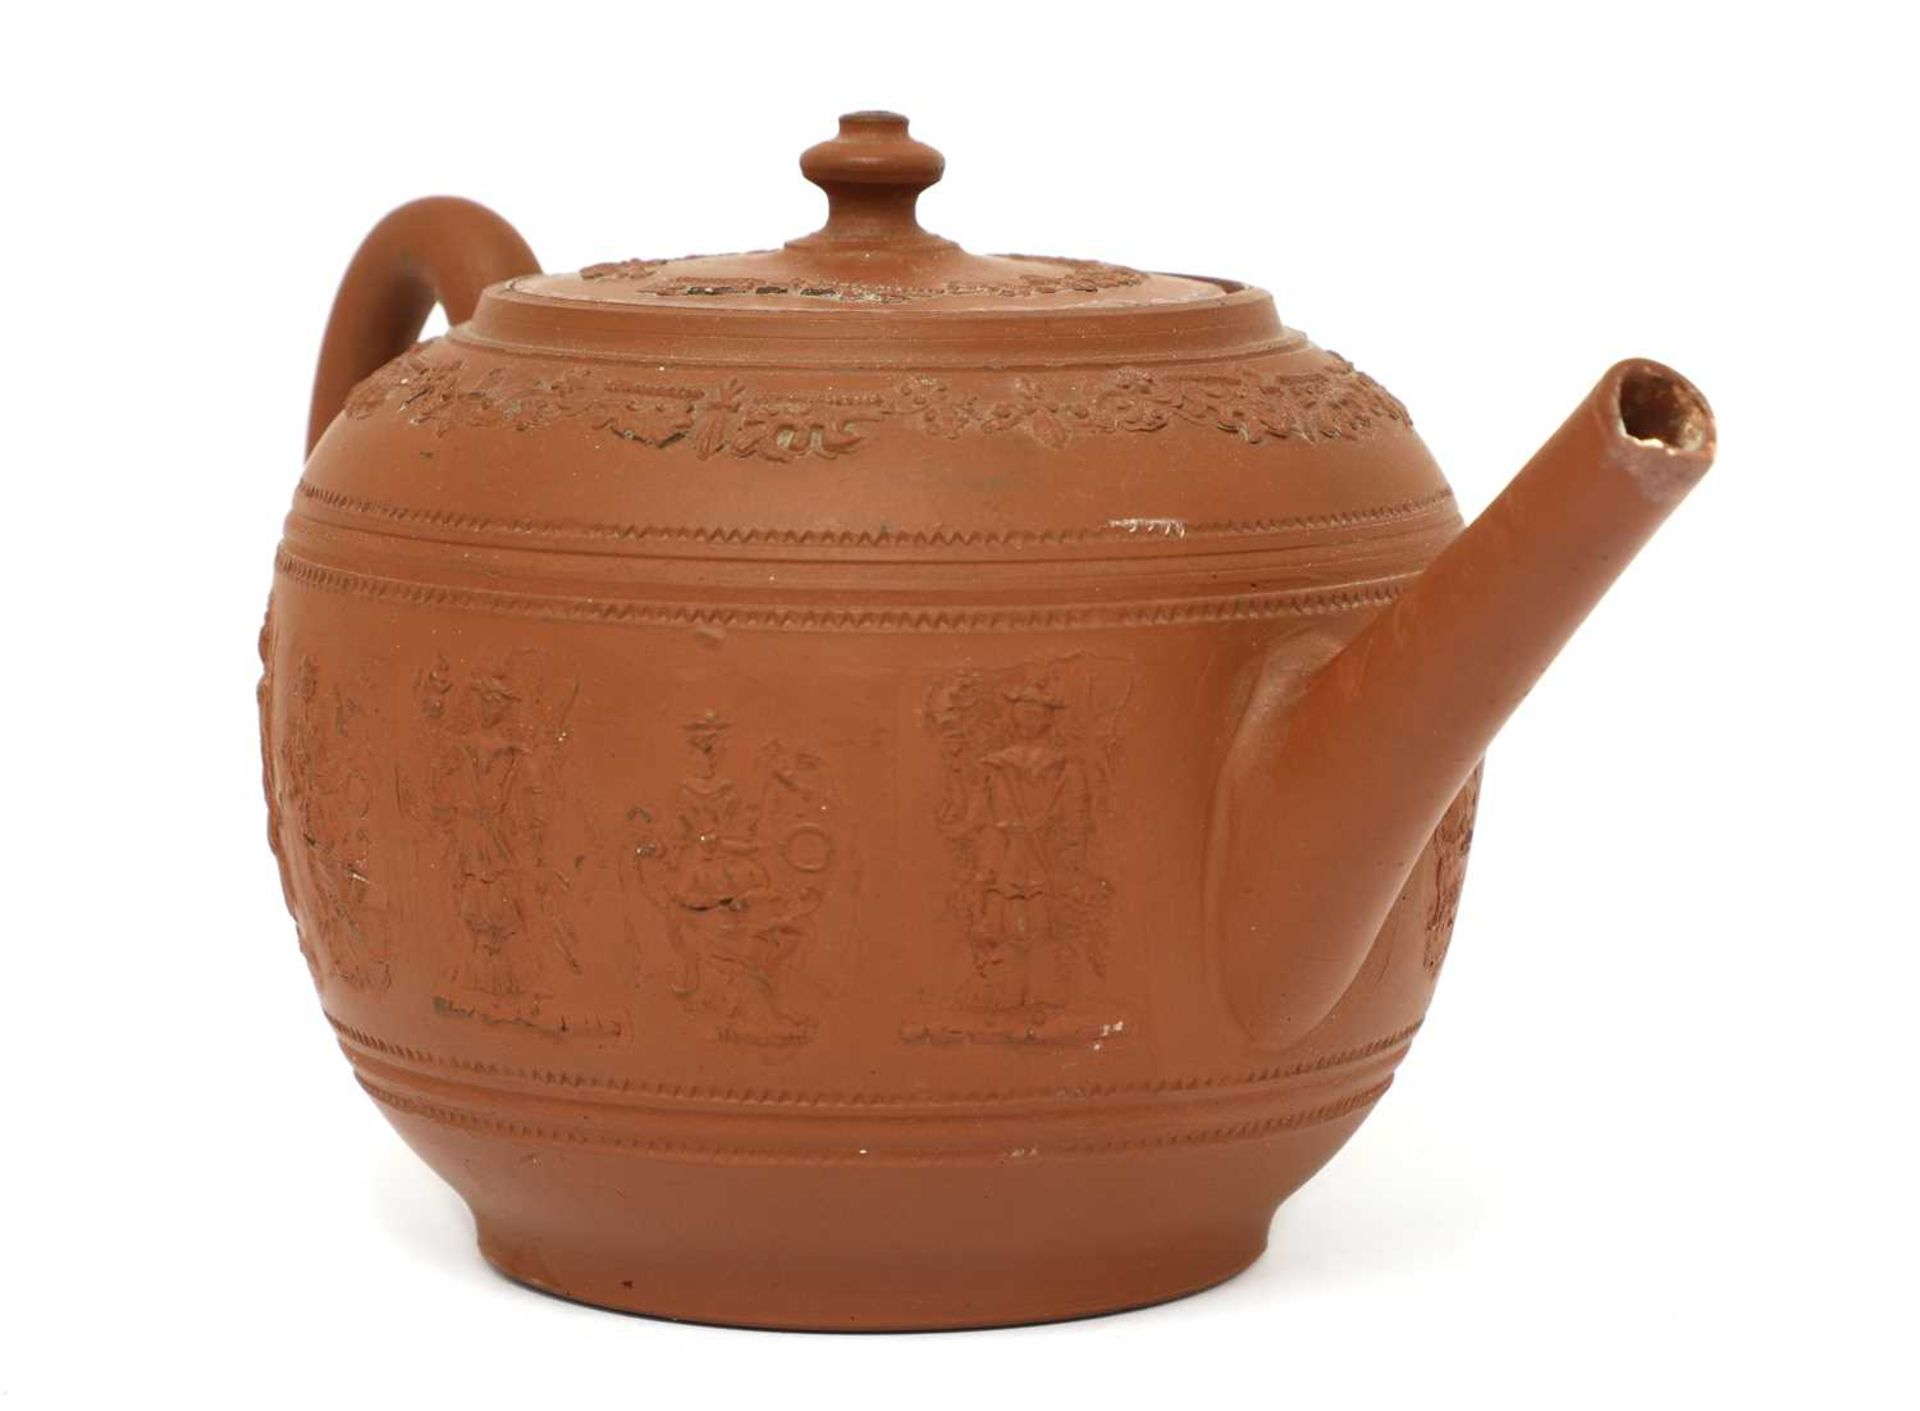 A Staffordshire redware globular teapot and cover, - Image 3 of 4